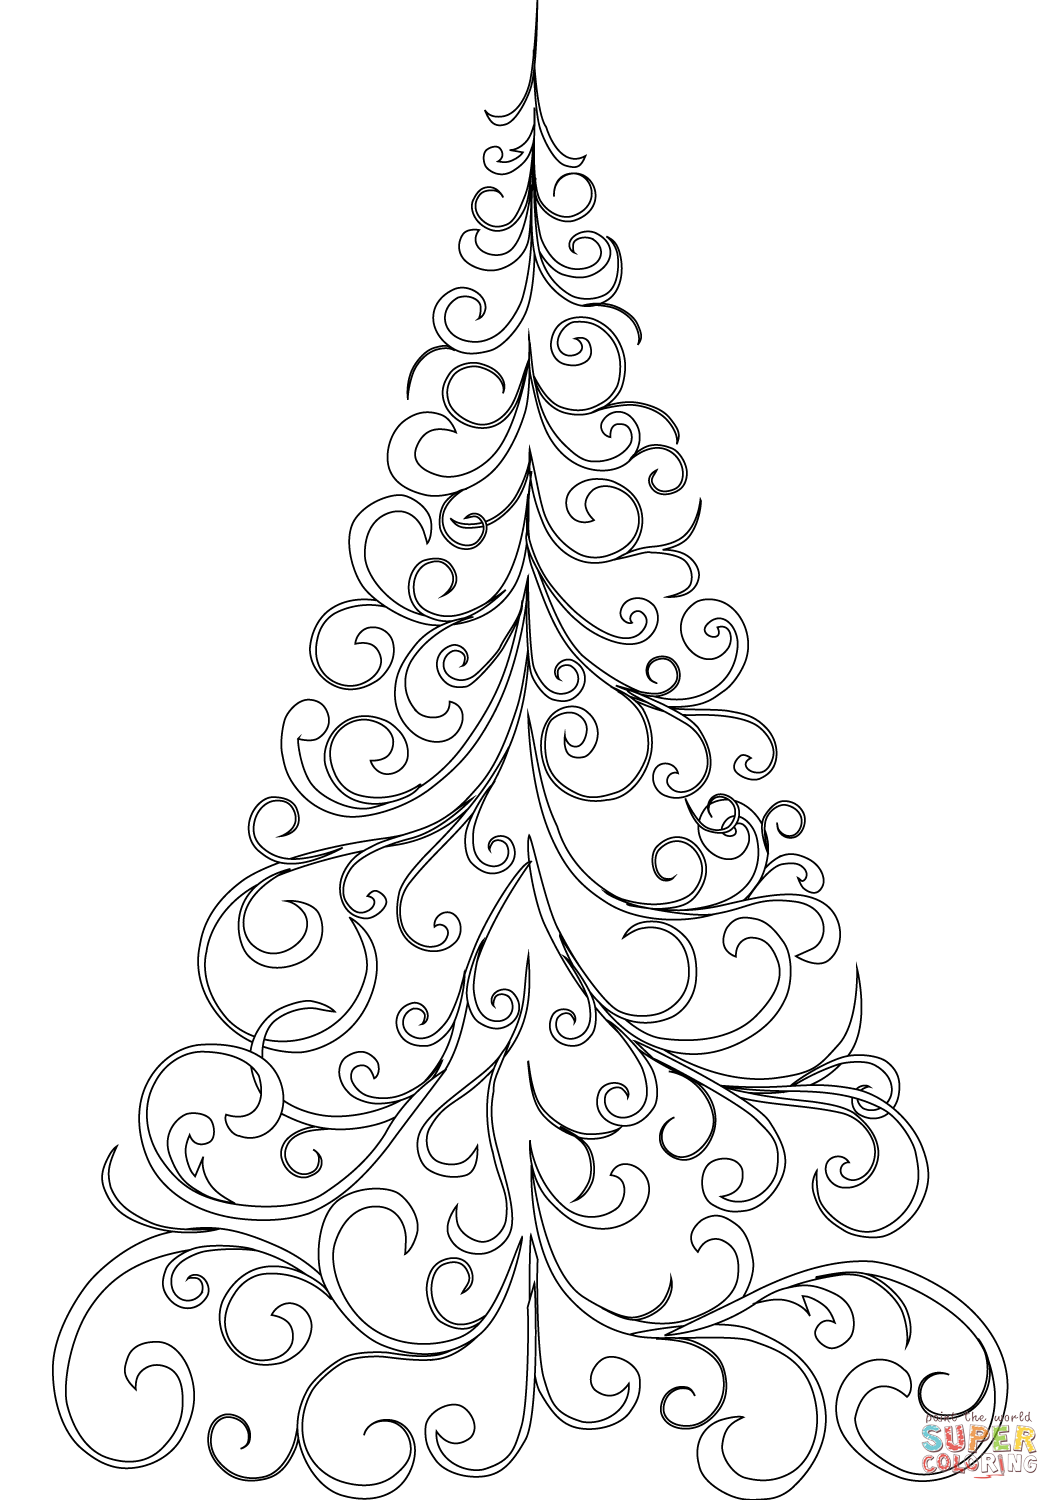 1060x1500 Free Online Christmas Tree Coloring Pages